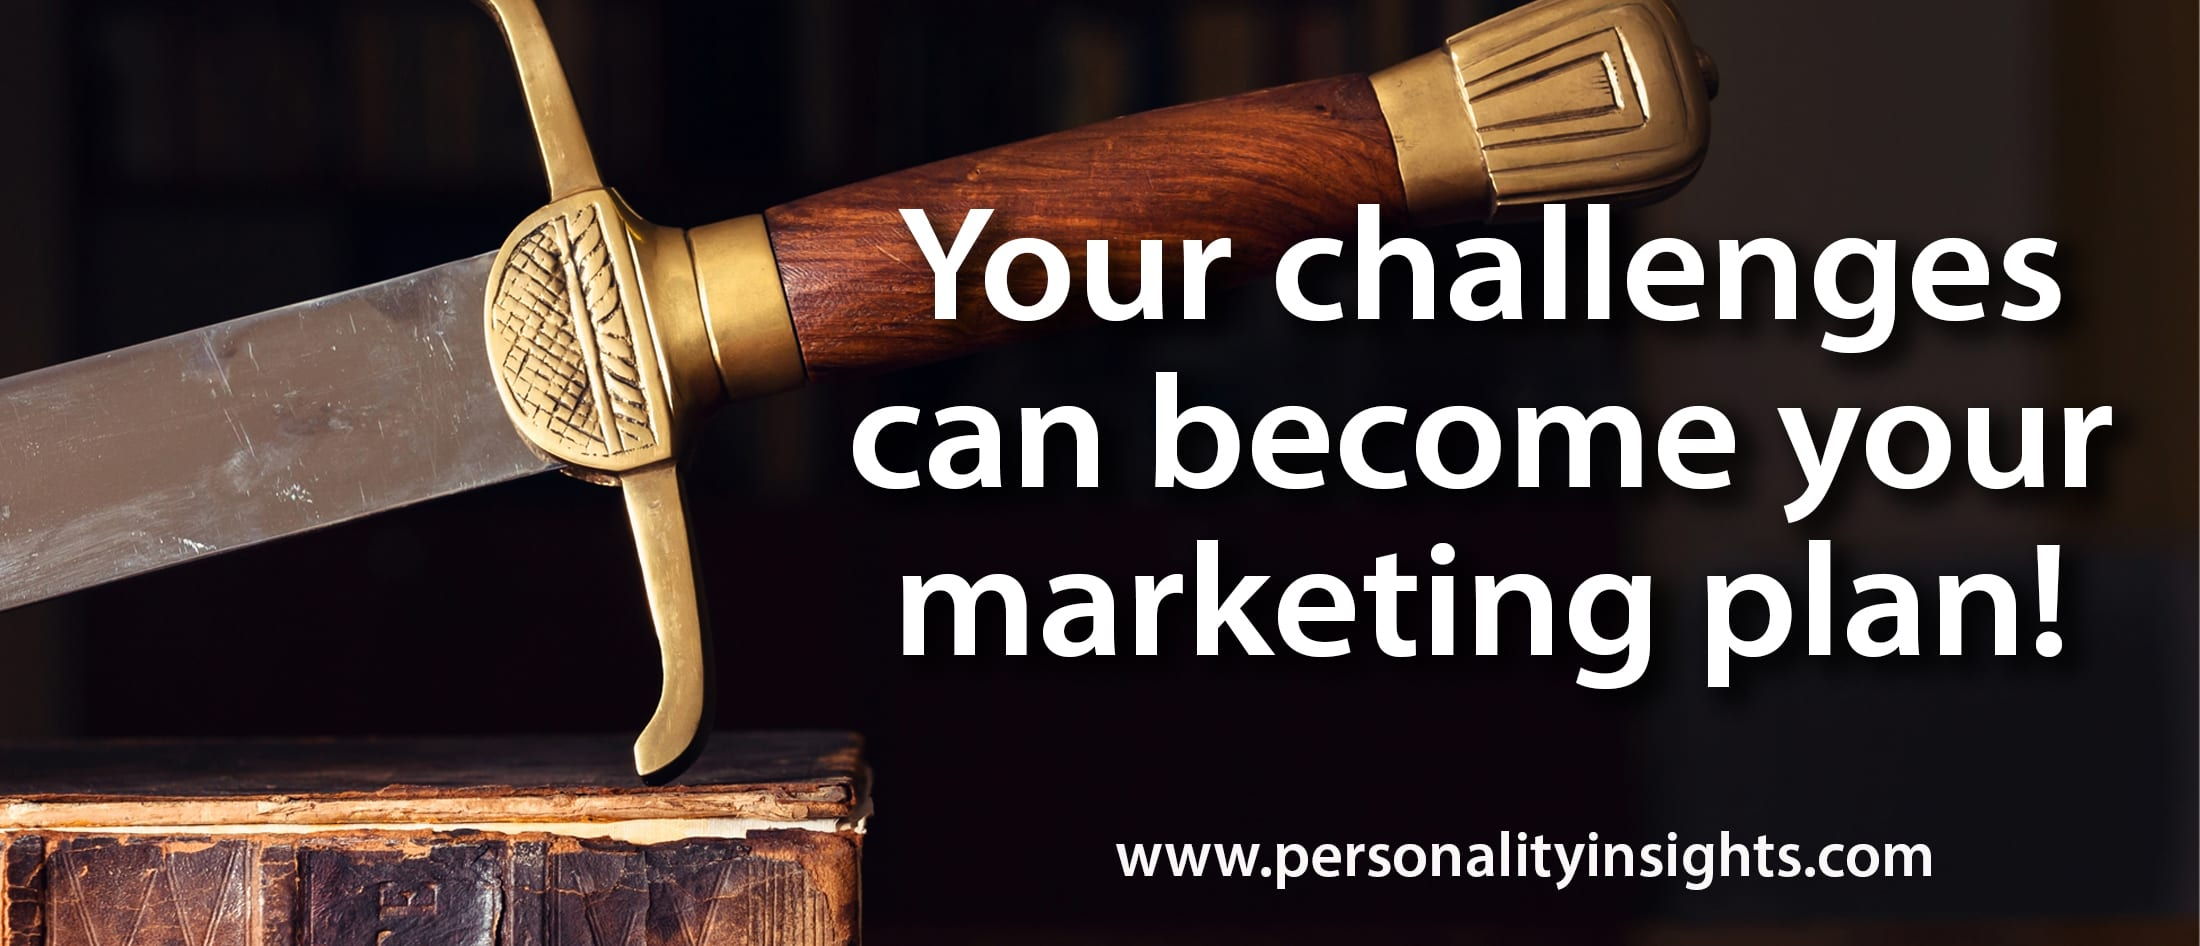 Tip: Your challenges can become your marketing plan!